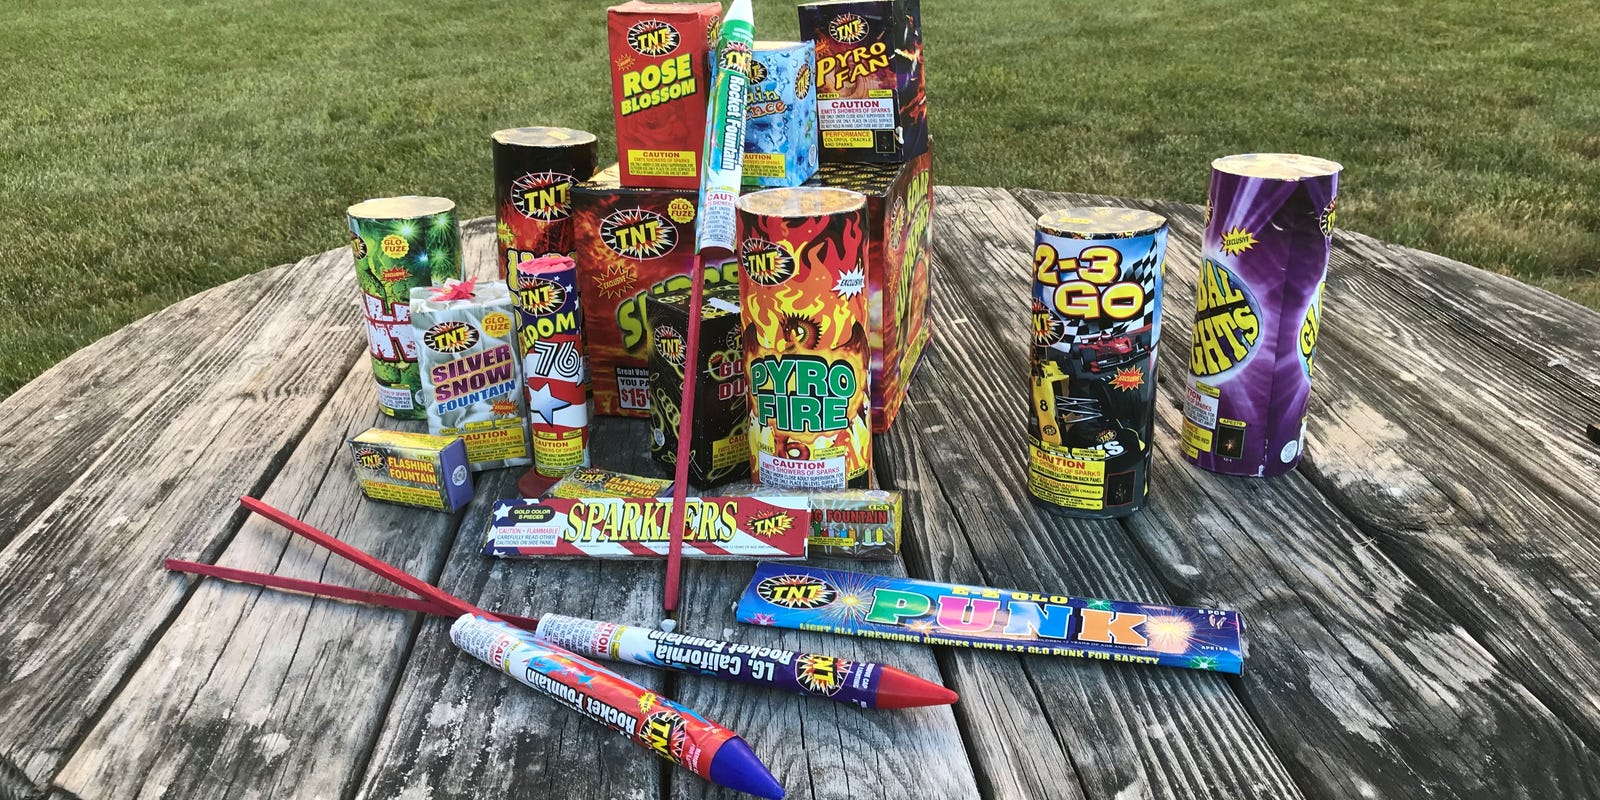 Fireworks are legal in NJ now, and they're everywhere